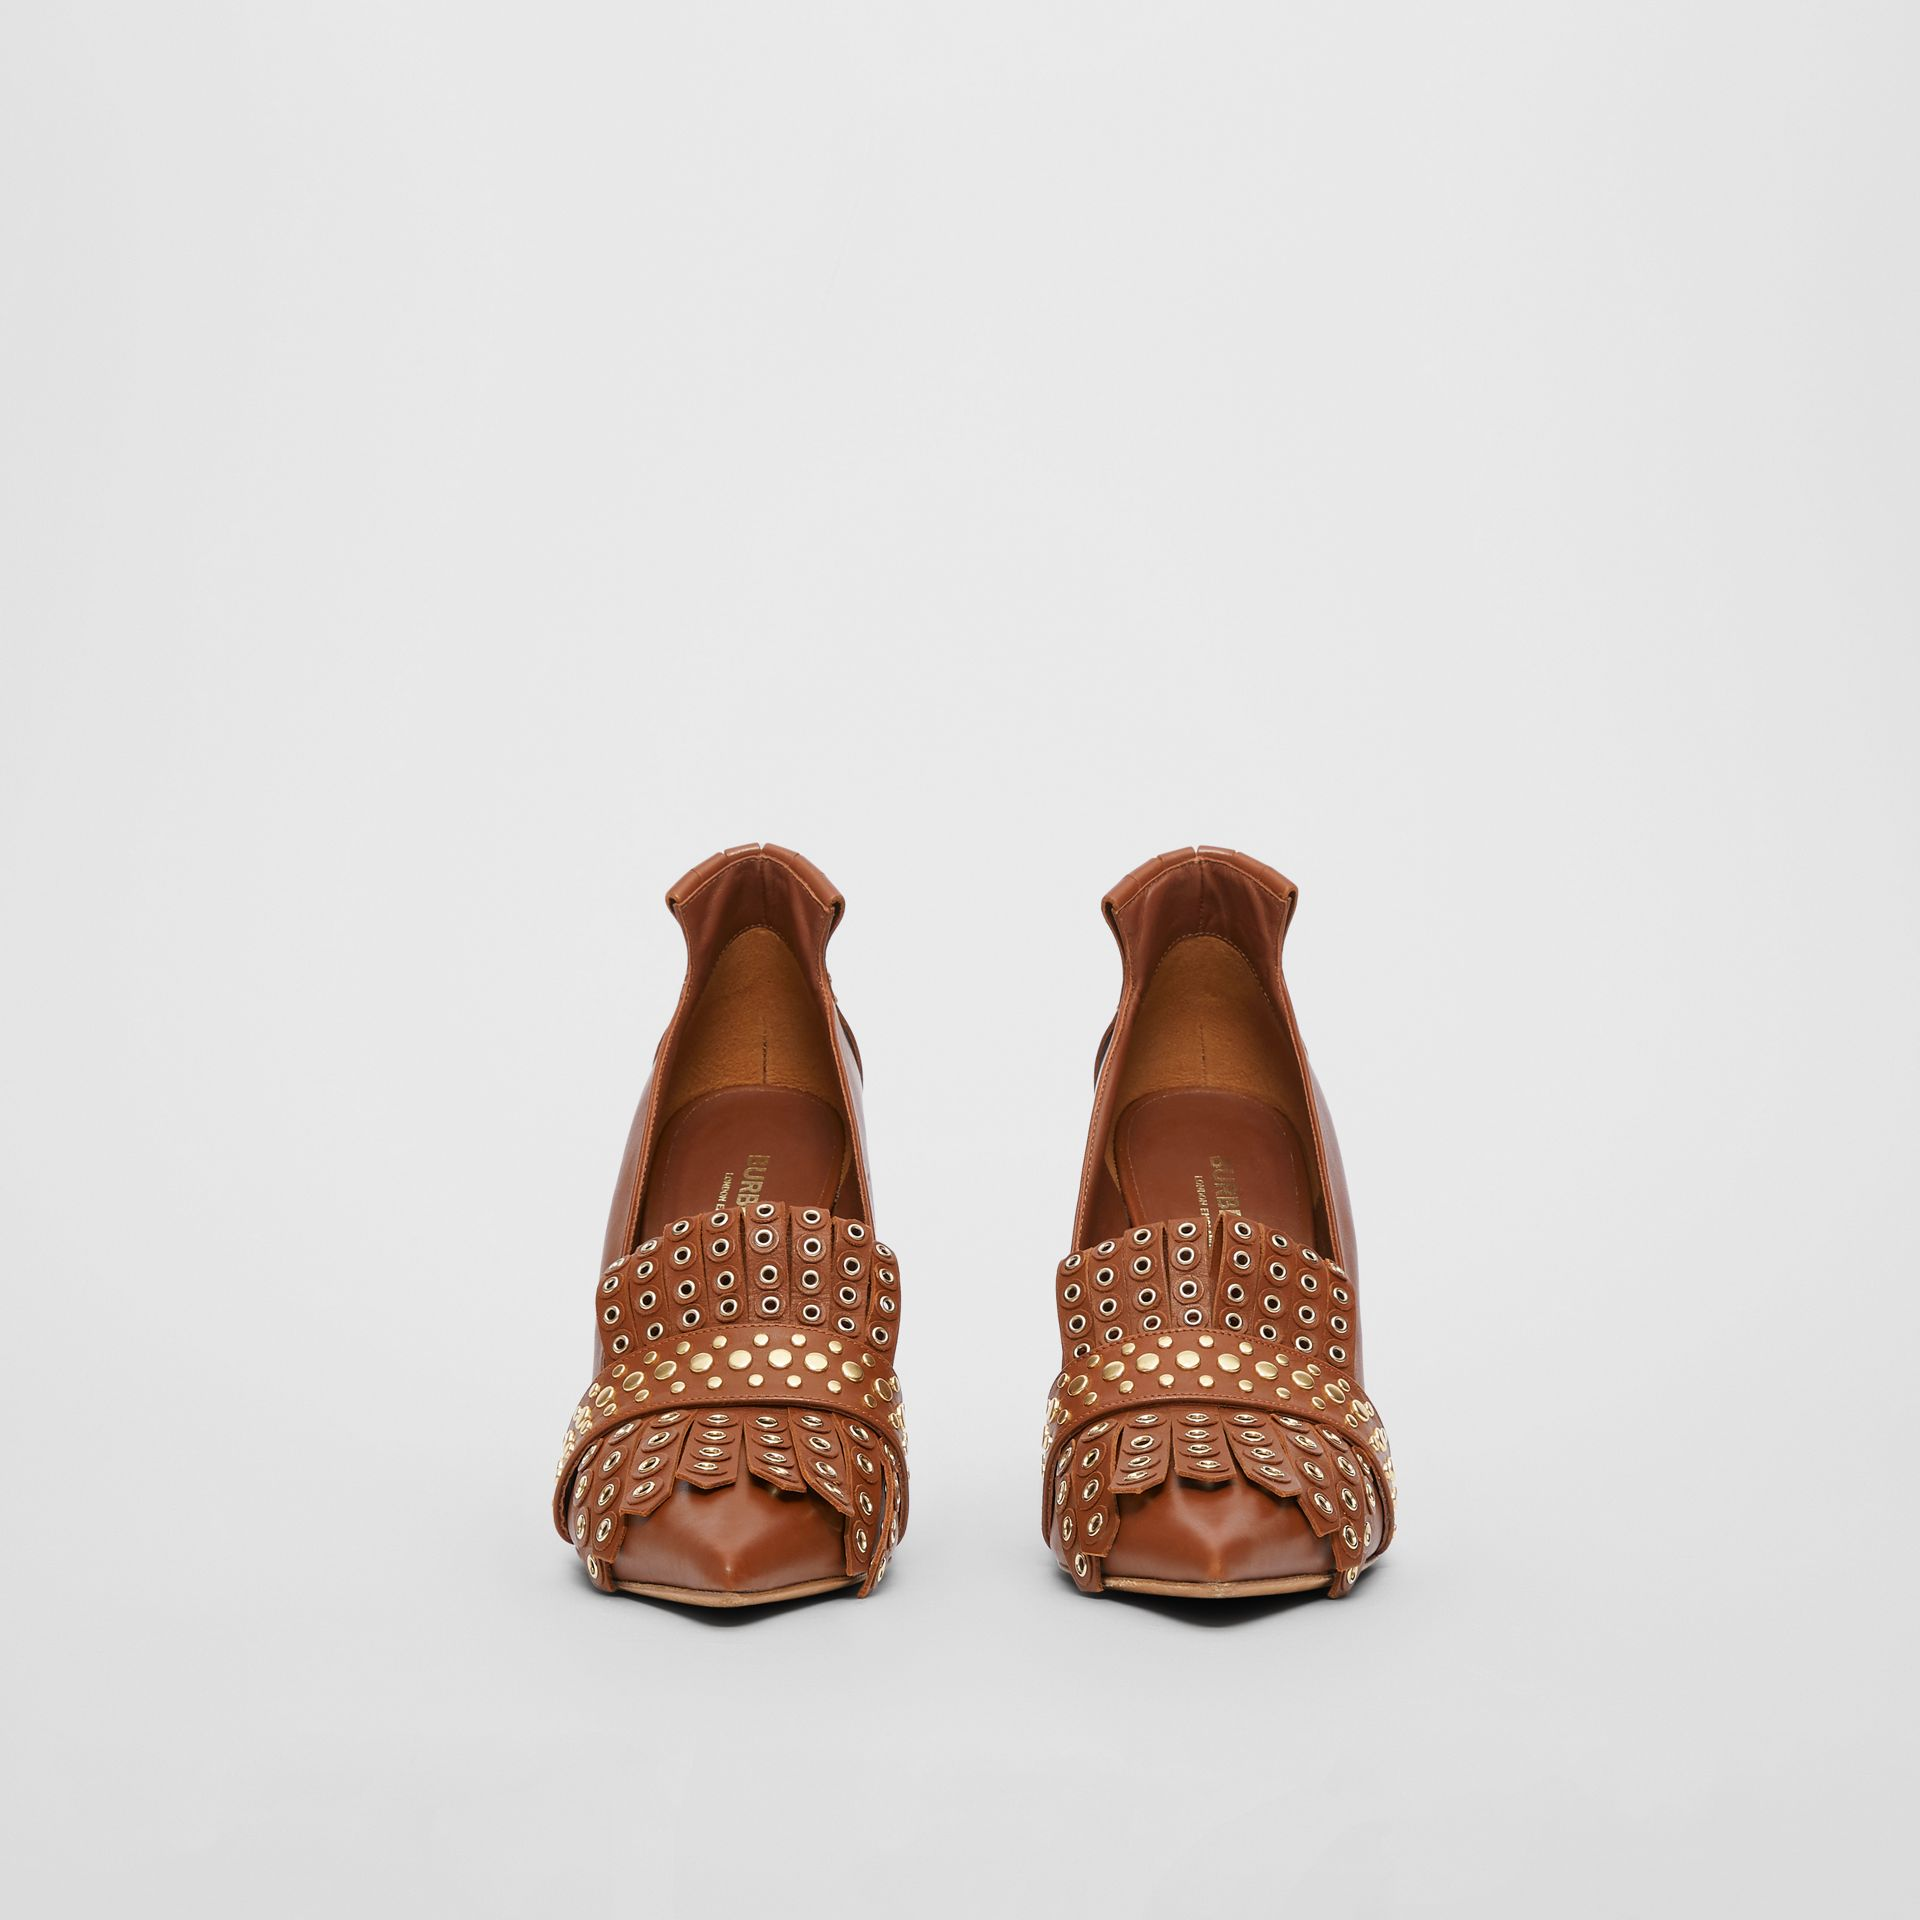 Studded Kiltie Fringe Leather Point-toe Pumps in Tan - Women | Burberry - gallery image 3